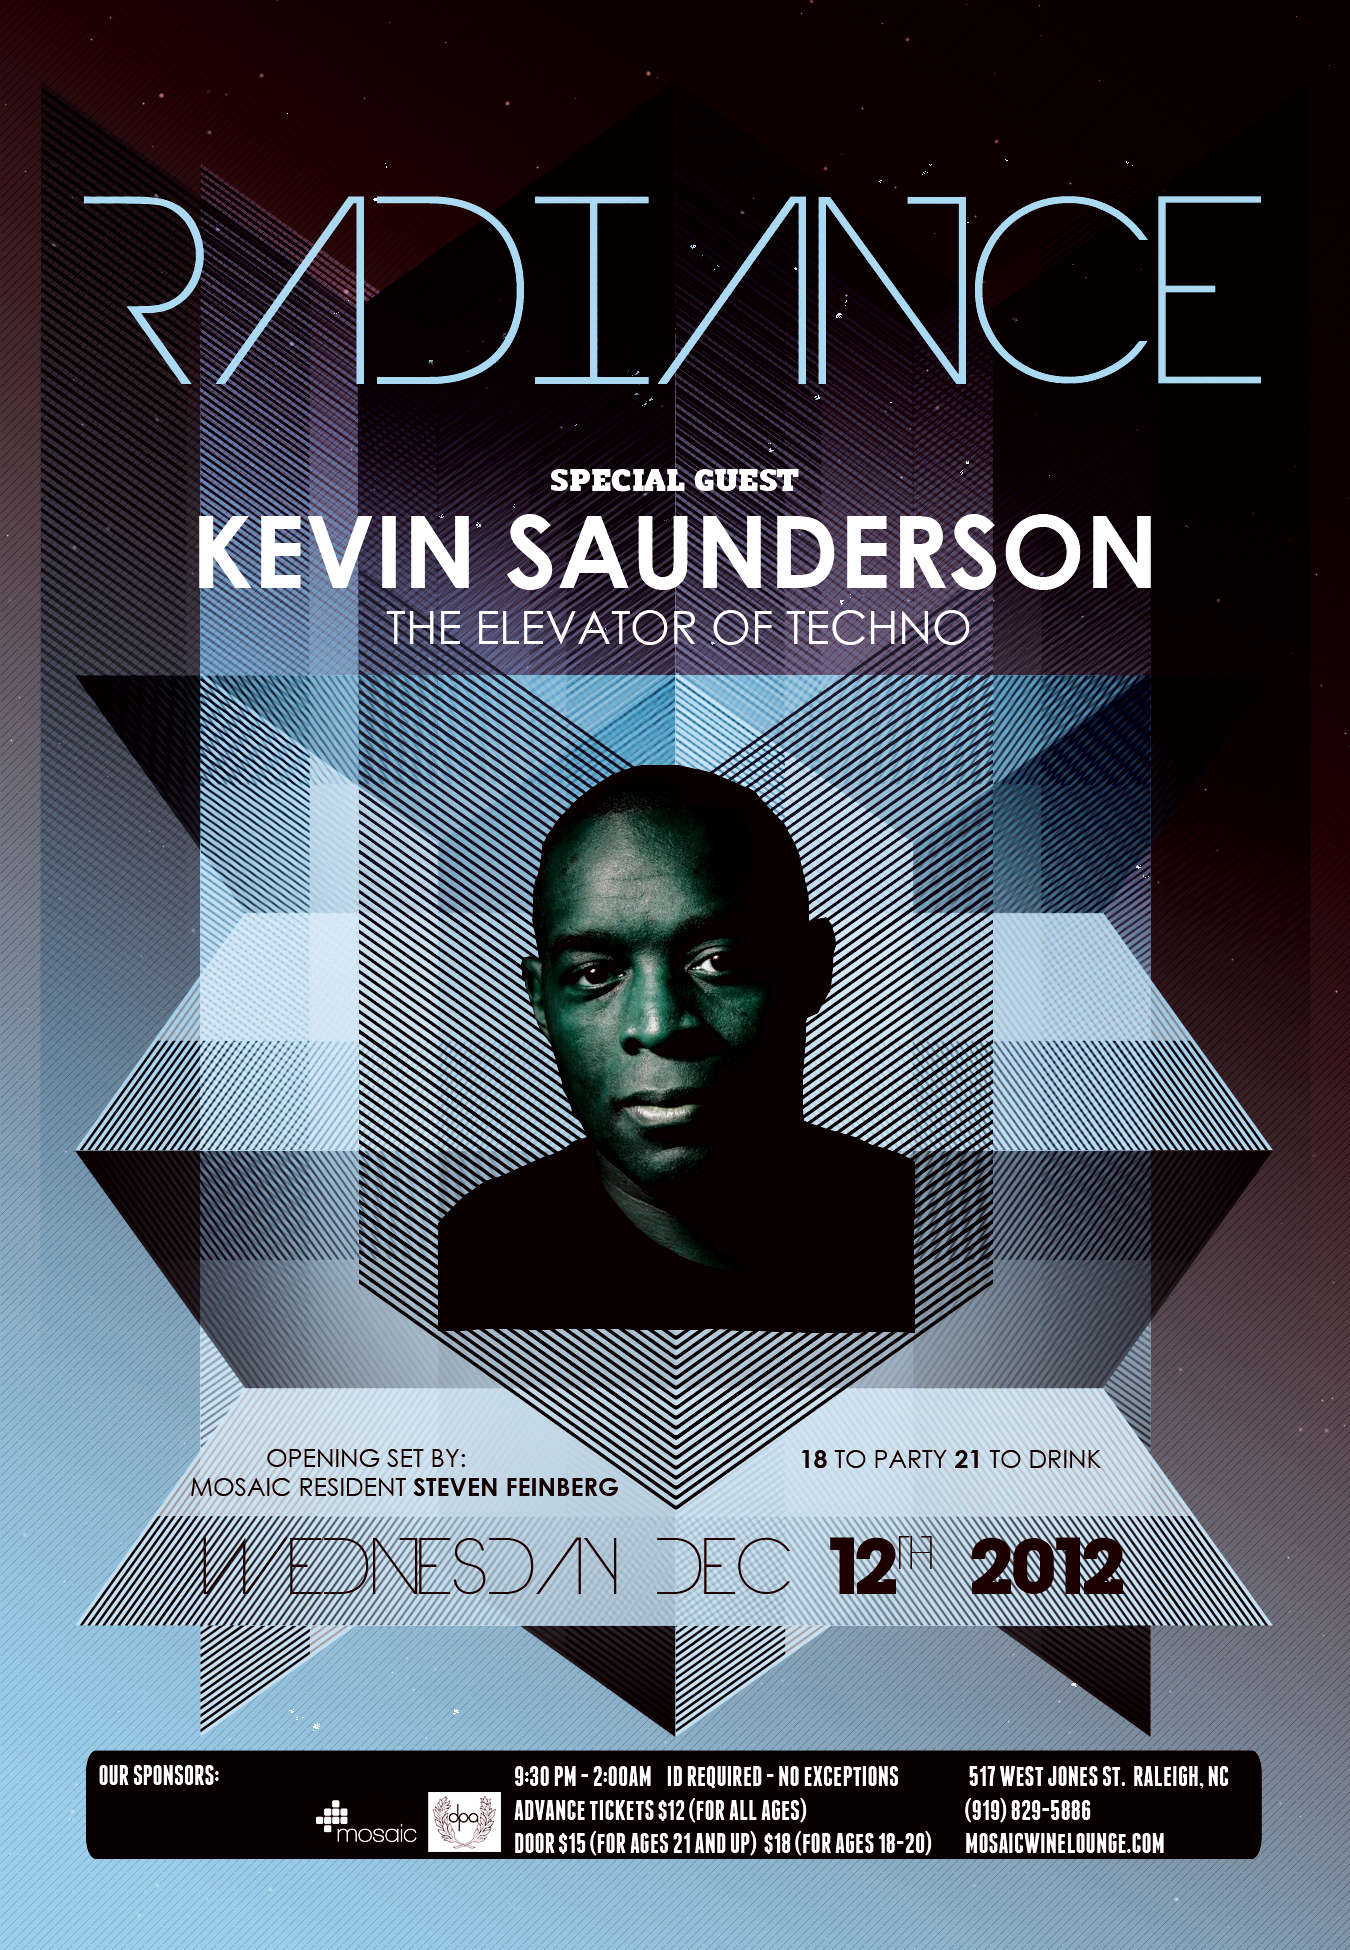 Flyer for KEVINSAUNDERSON Mosaic 12/12/12 Raleigh, NC